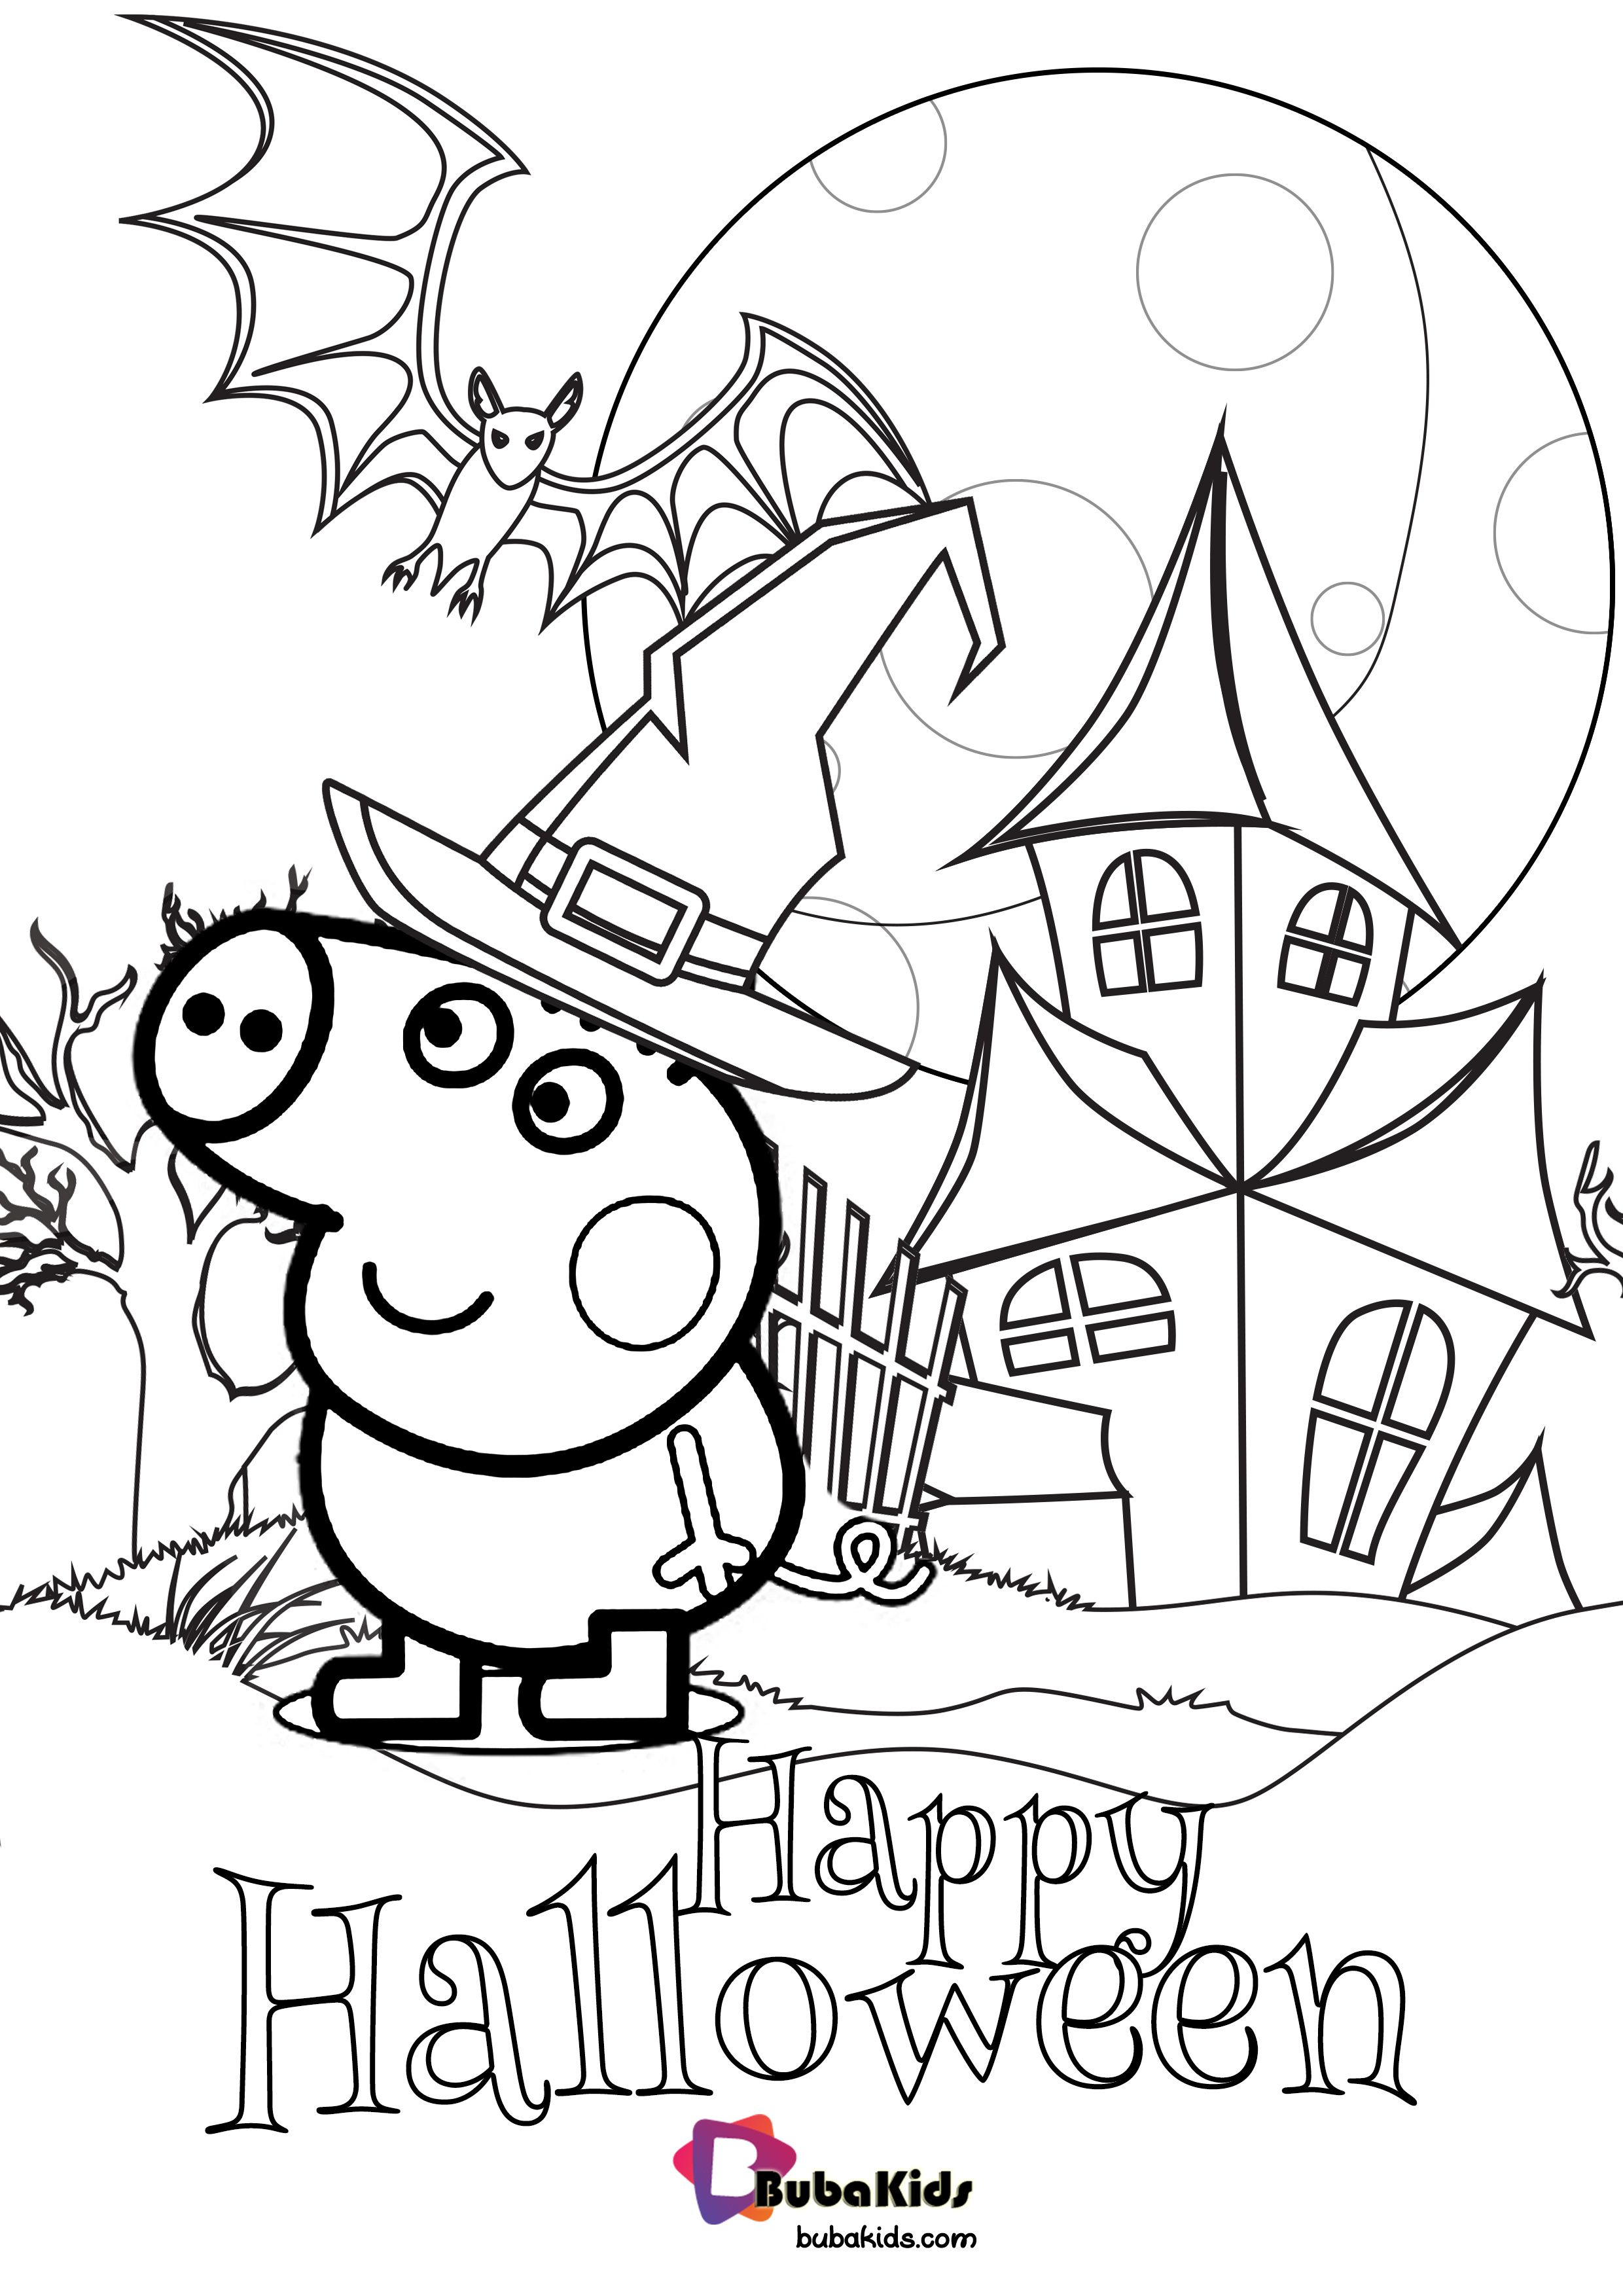 Peppa Pig Happy Halloween Coloring Page coloringpage